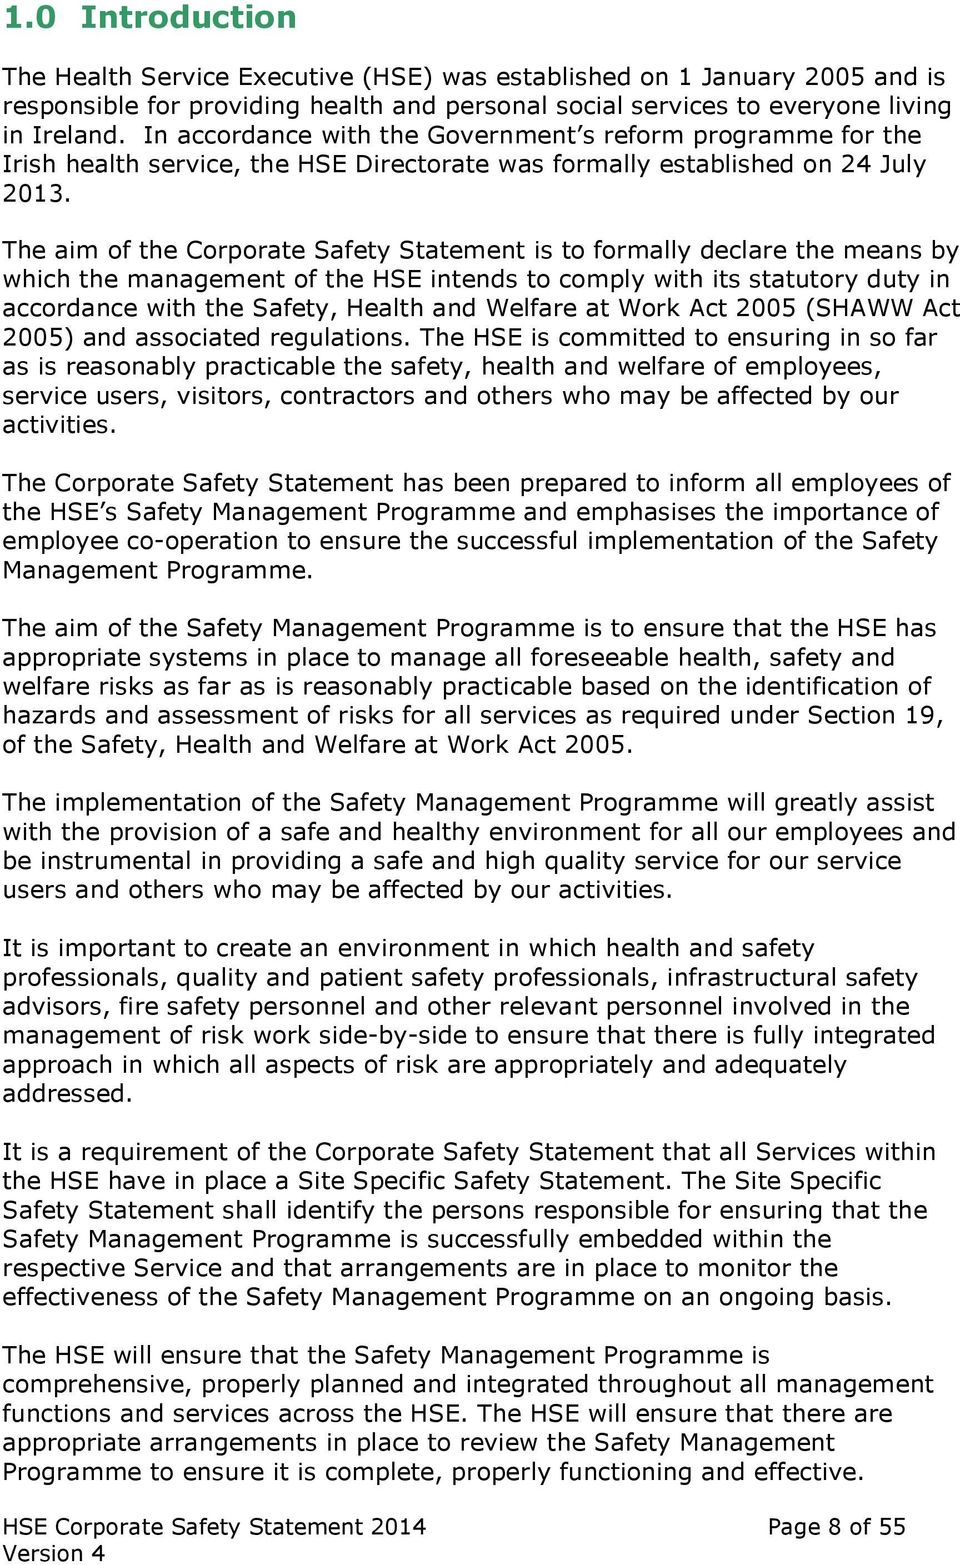 The aim of the Corporate Safety Statement is to formally declare the means by which the management of the HSE intends to comply with its statutory duty in accordance with the Safety, Health and